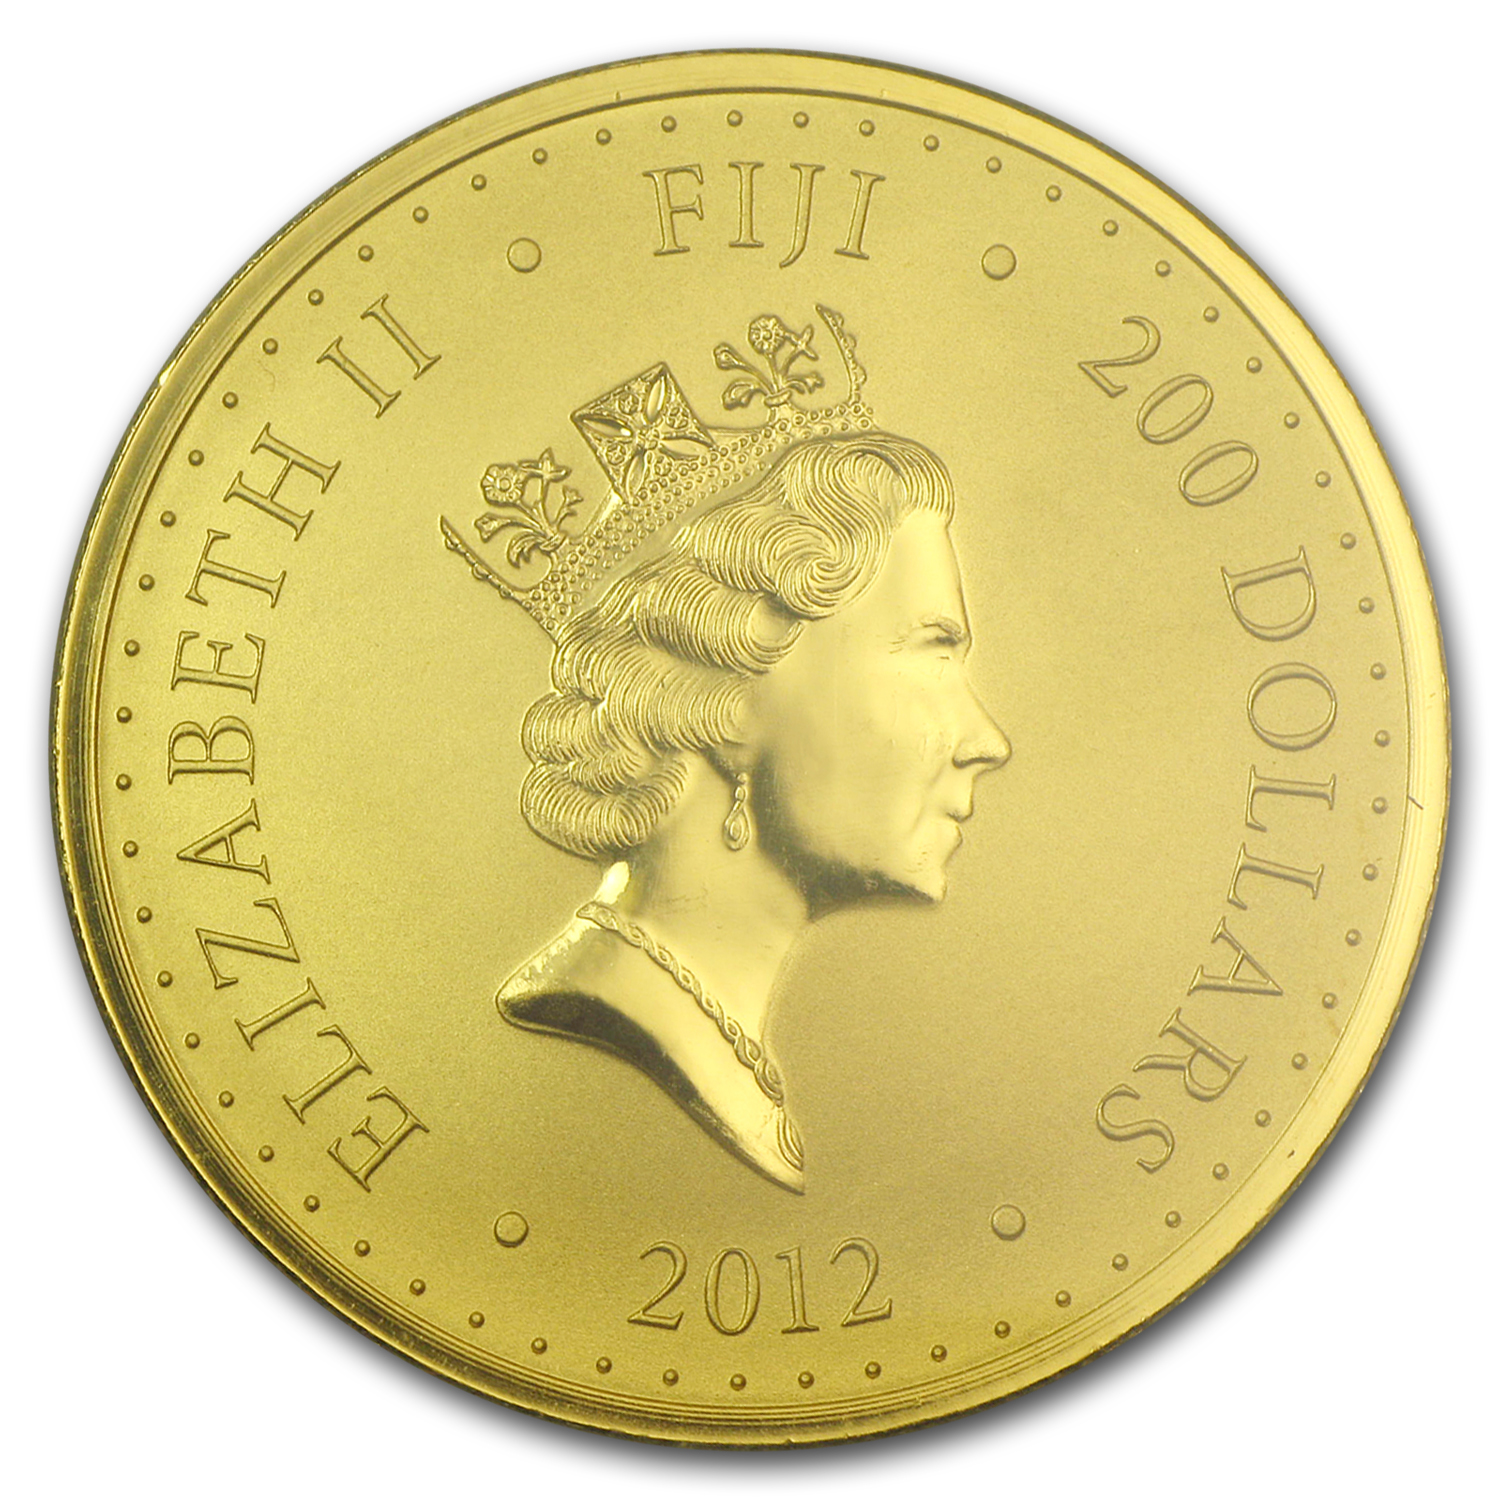 2012 1 oz Gold Fiji $100 Pacific Sovereign .9999 (In Assay Card)